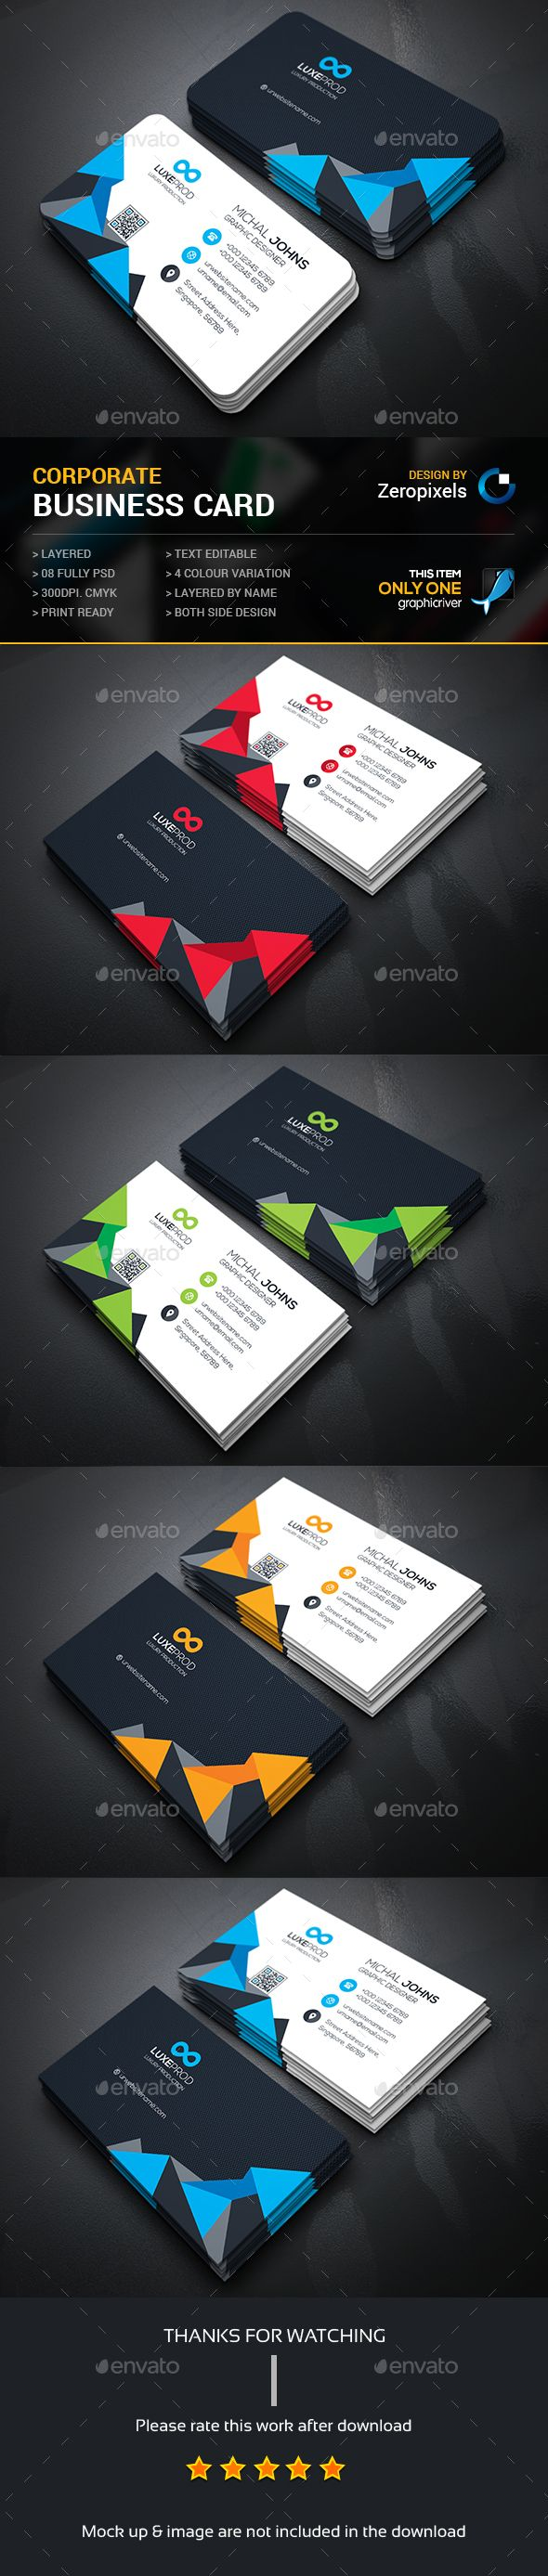 142 best id card images on pinterest business card design business card template psd download here httpgraphicriver wajeb